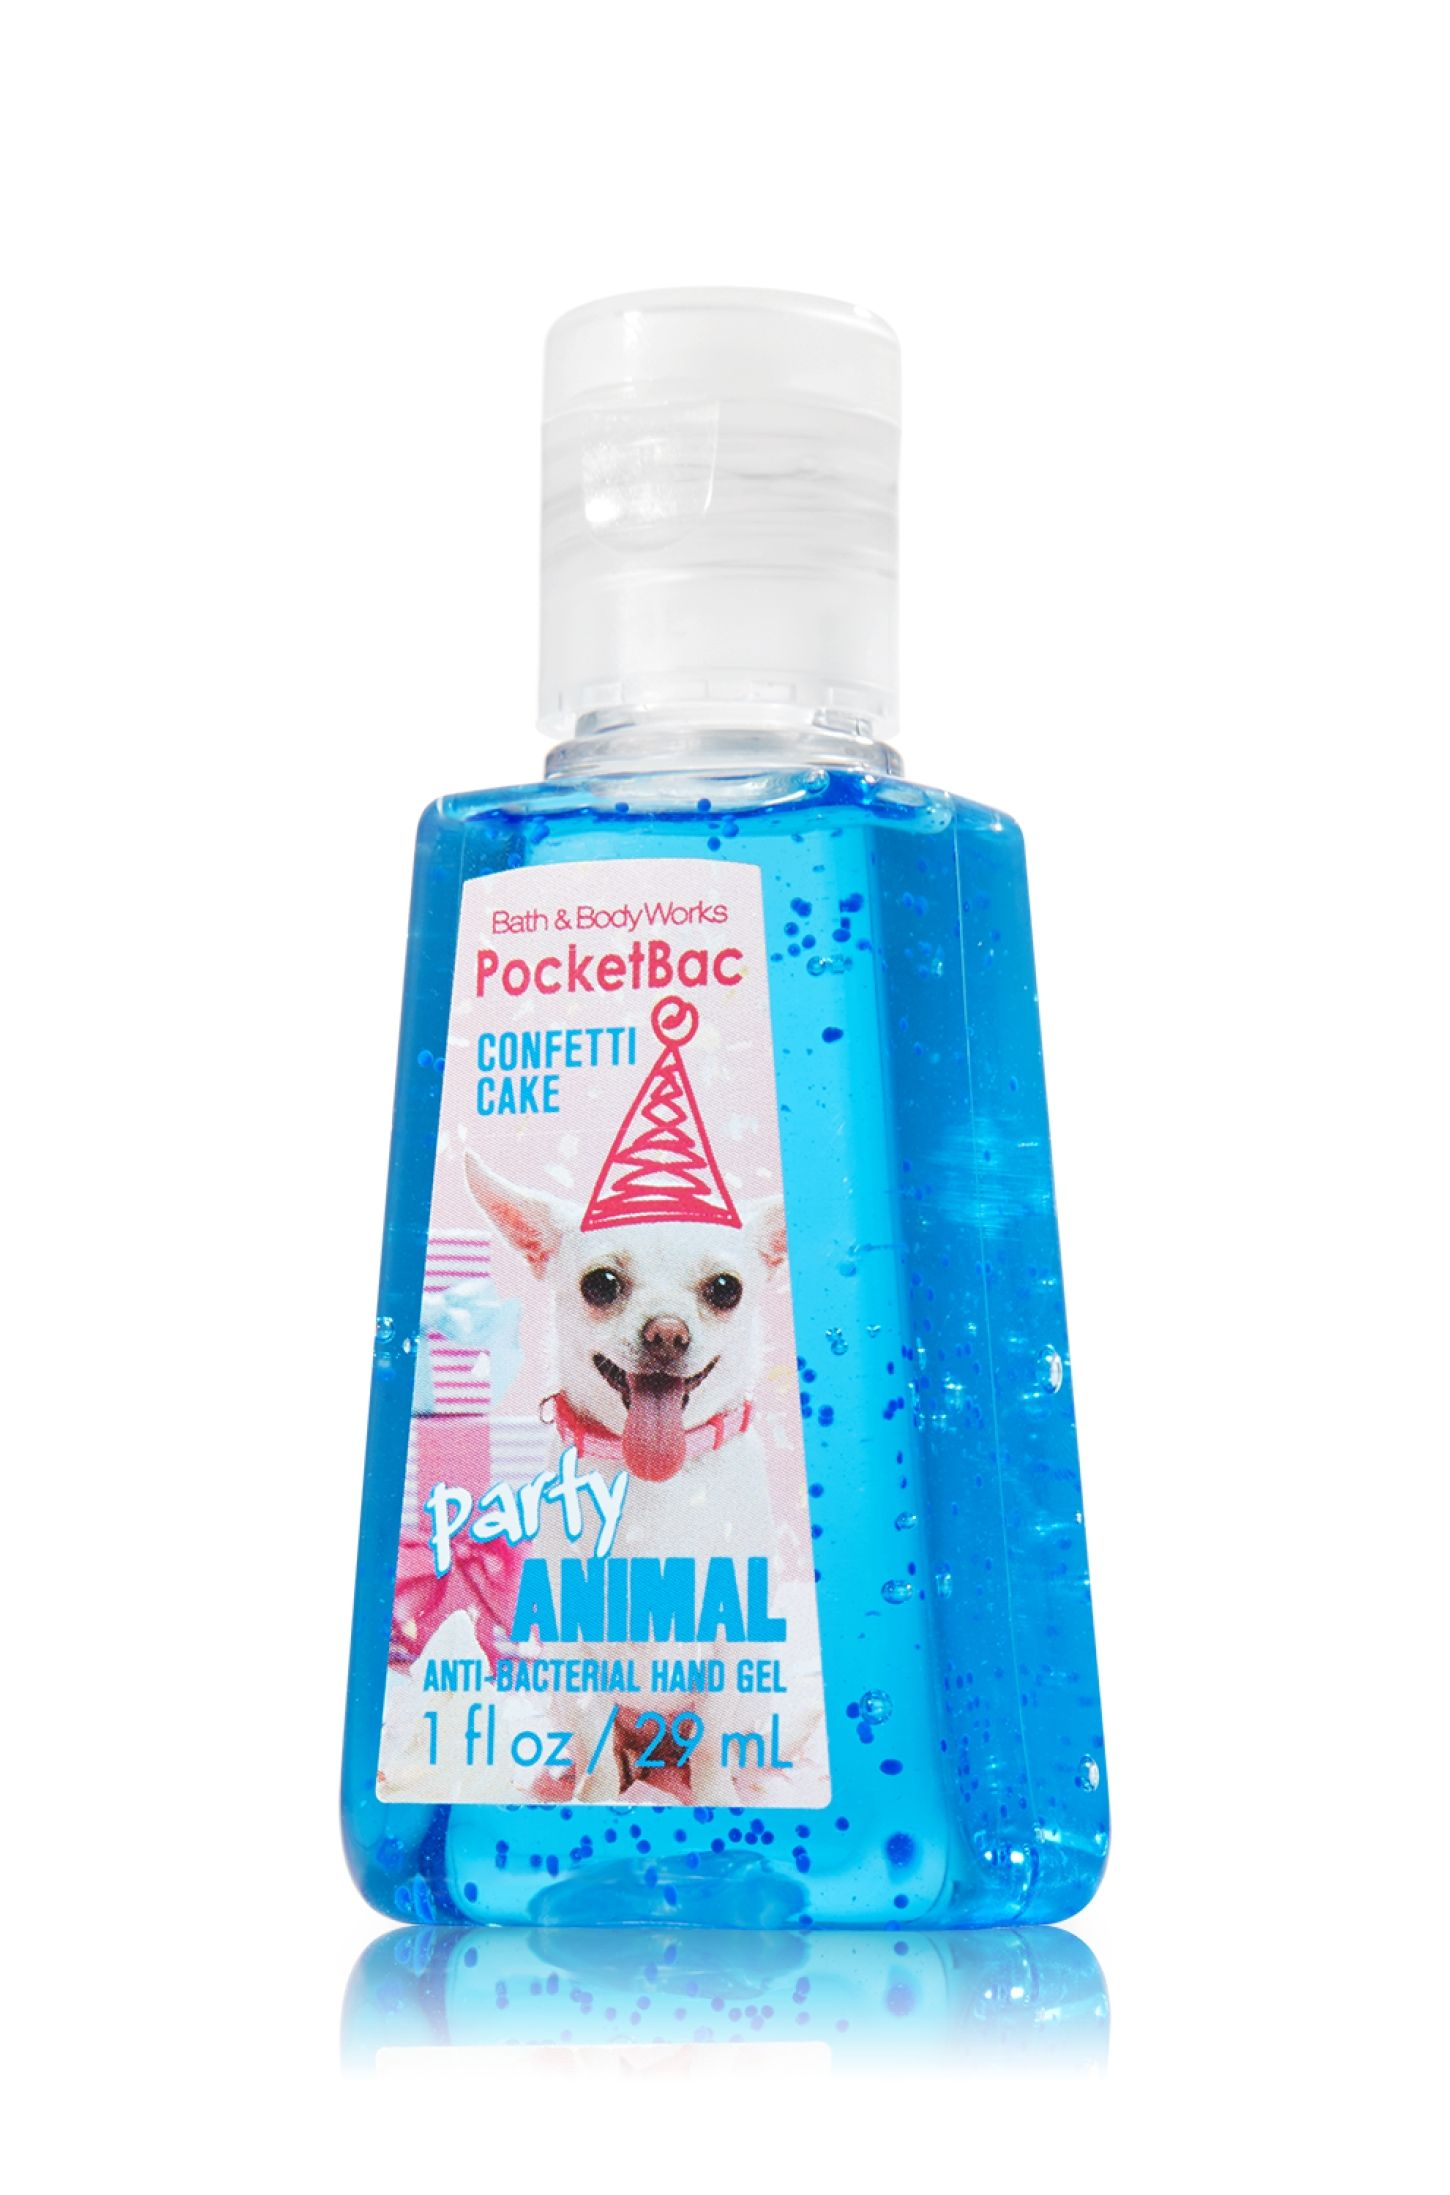 Party Animal Pocketbac Sanitizing Hand Gel Anti Bacterial Bath